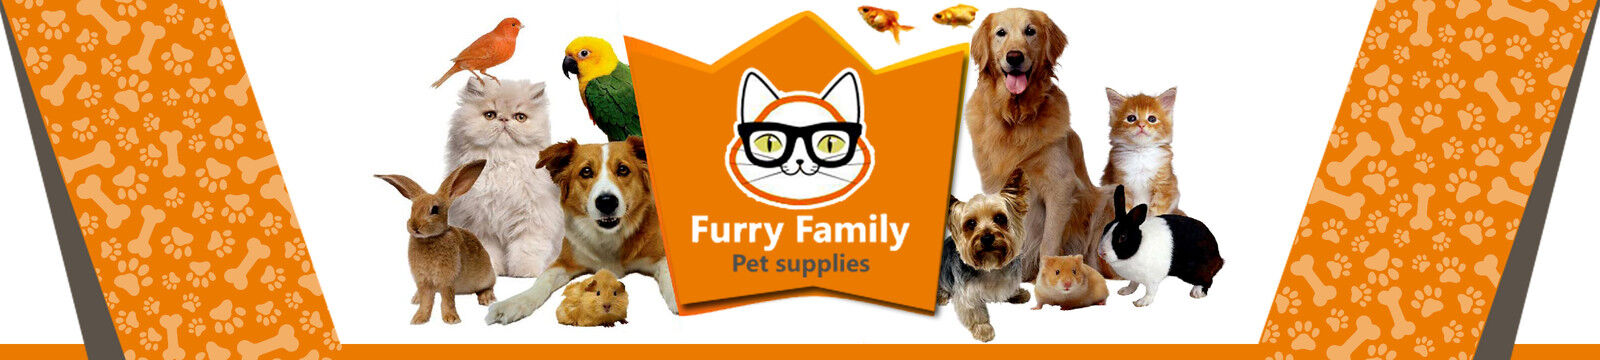 furry_family